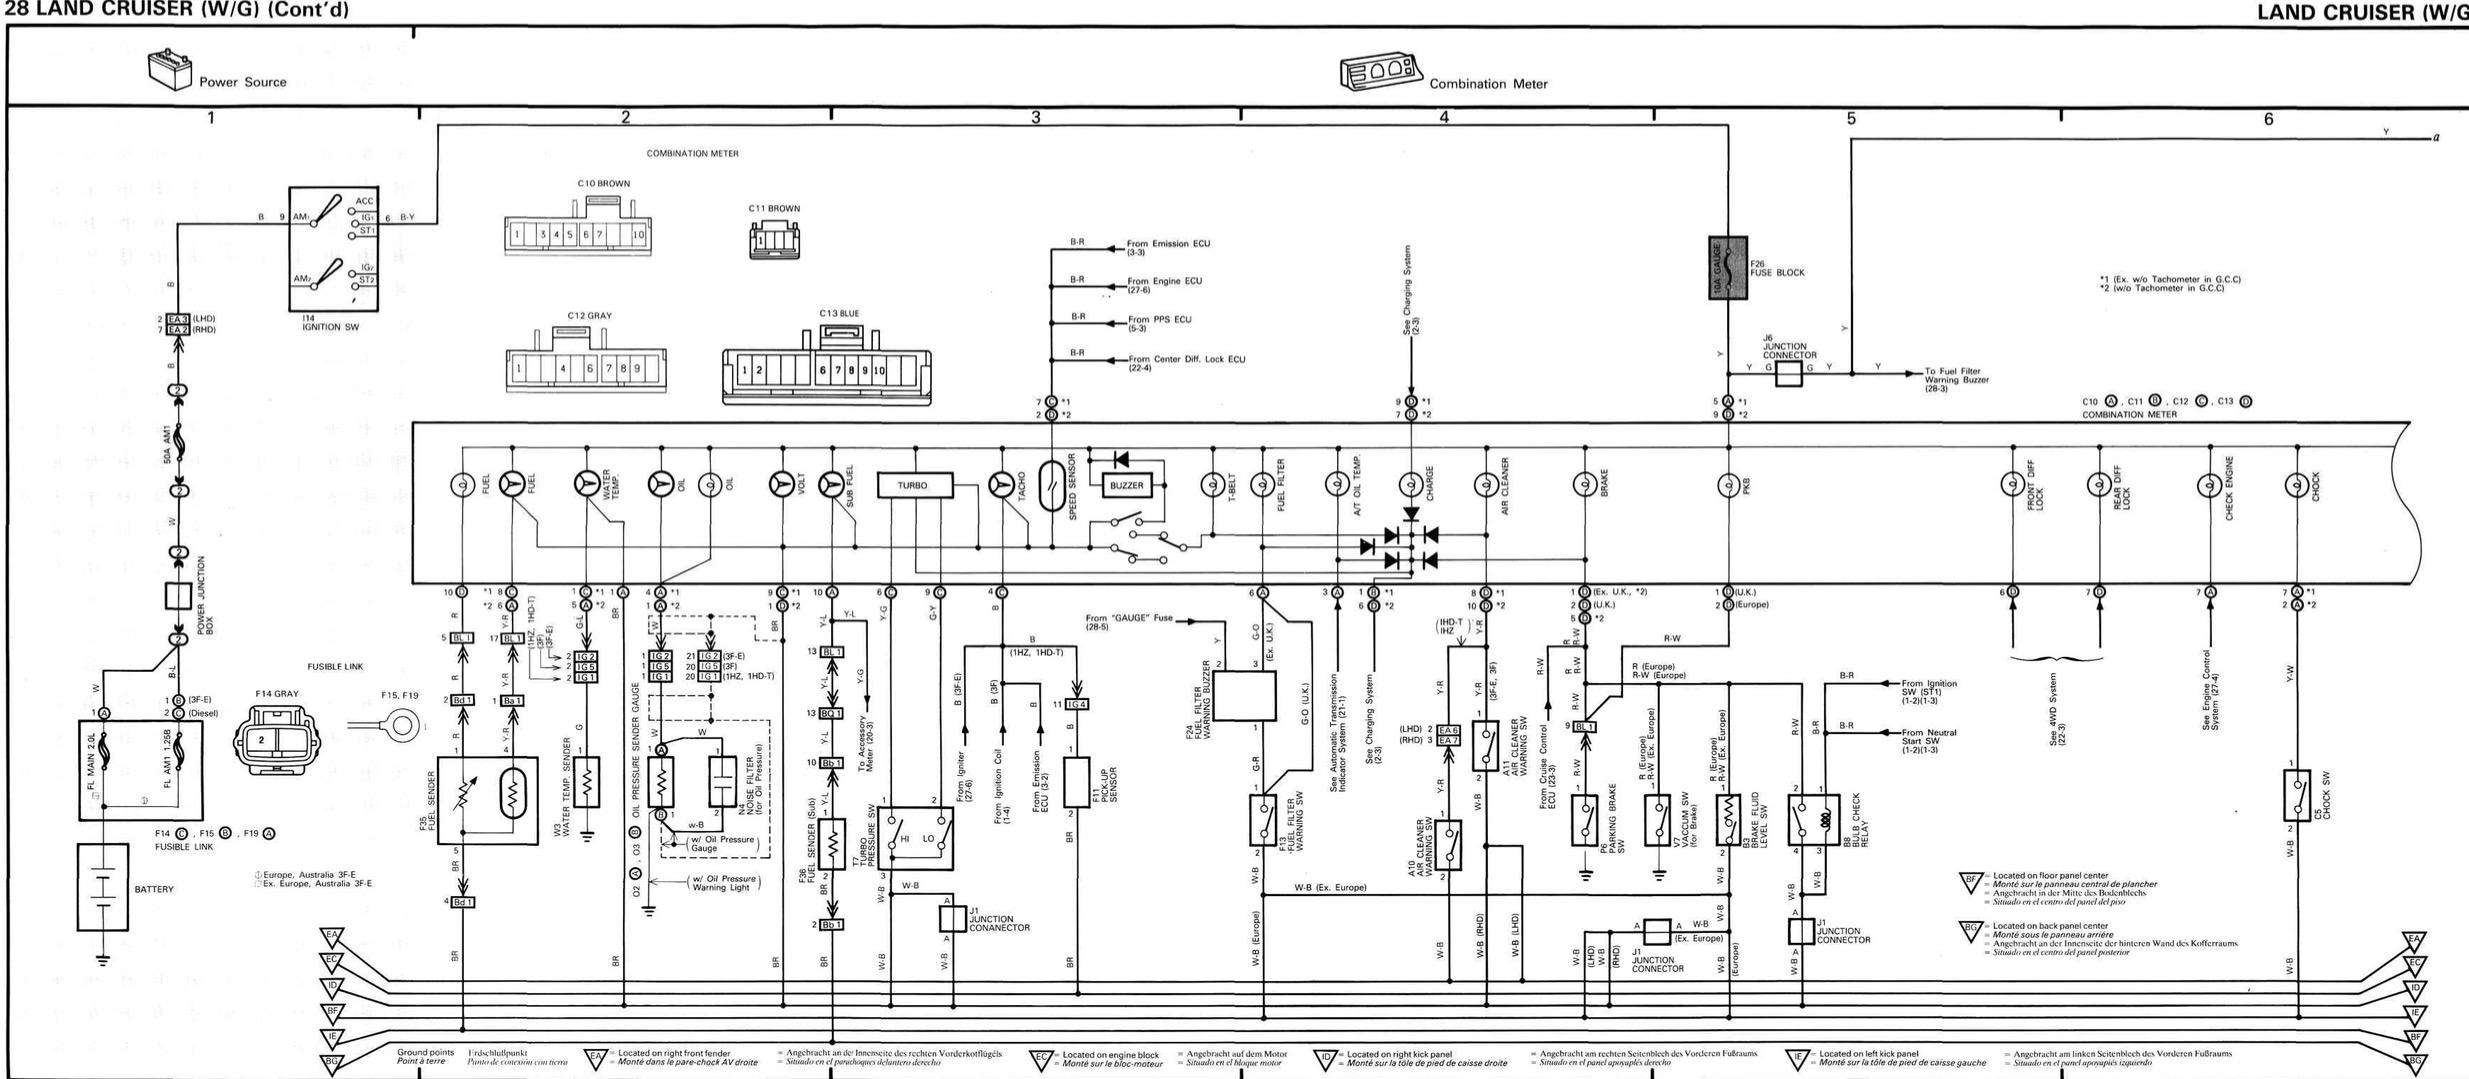 oil pressure sender wiring schematic? land cruiser club land cruiser 100 electrical wiring diagram at nearapp.co